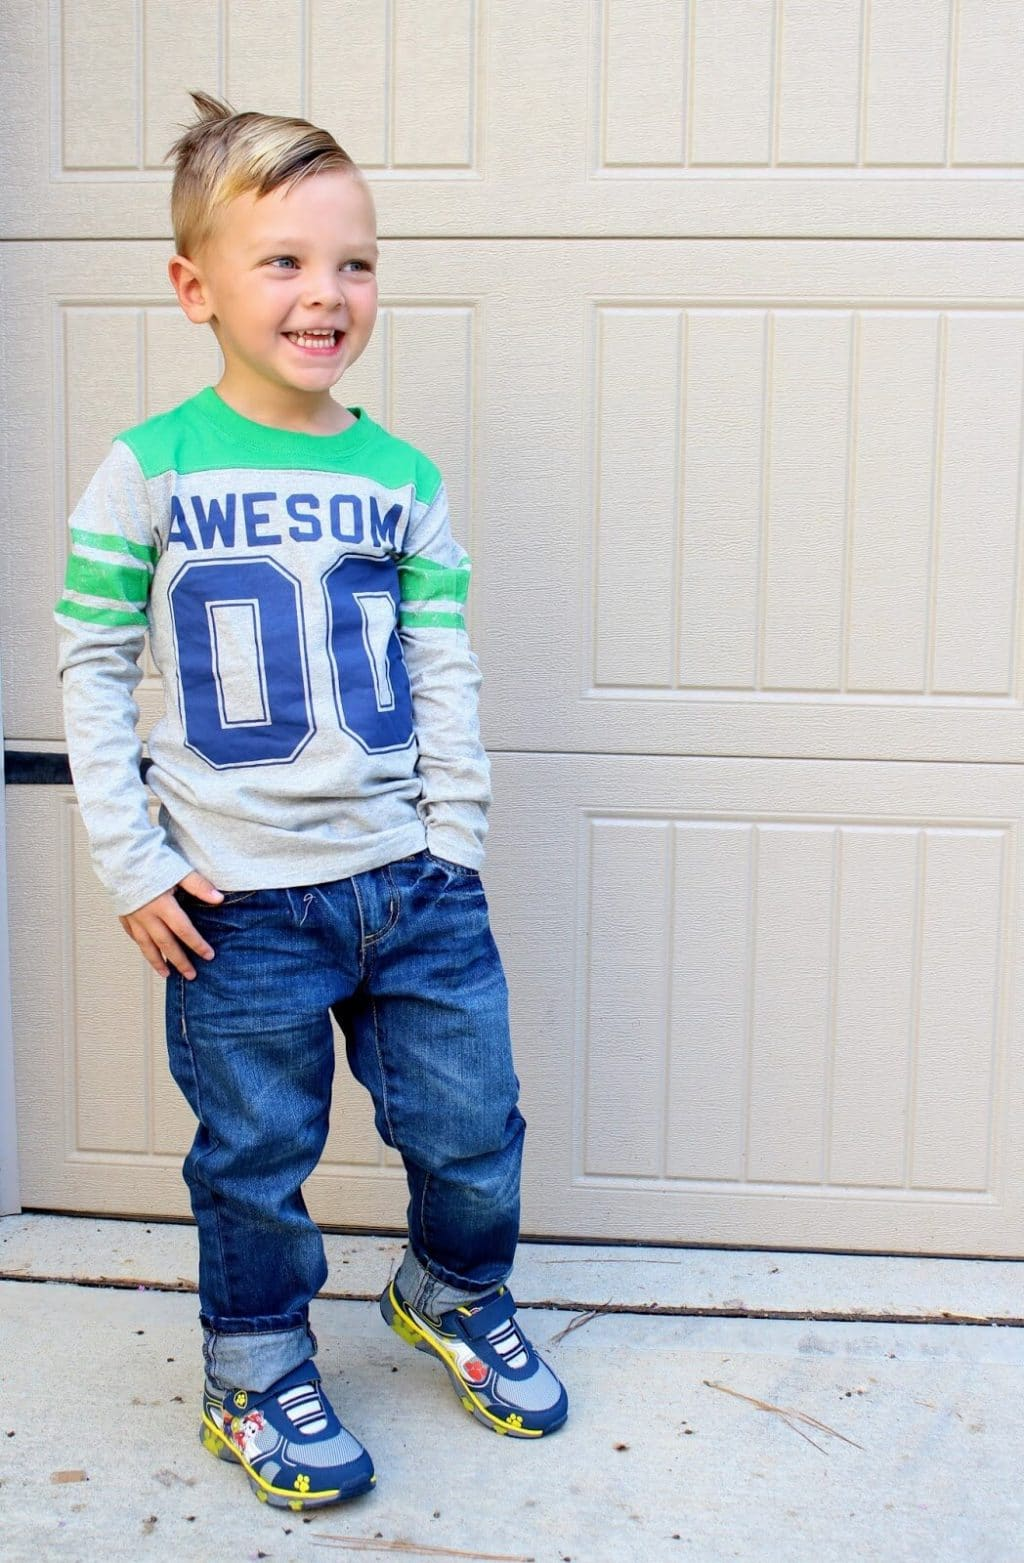 Paw Patrol Shoes FabKids Outfit